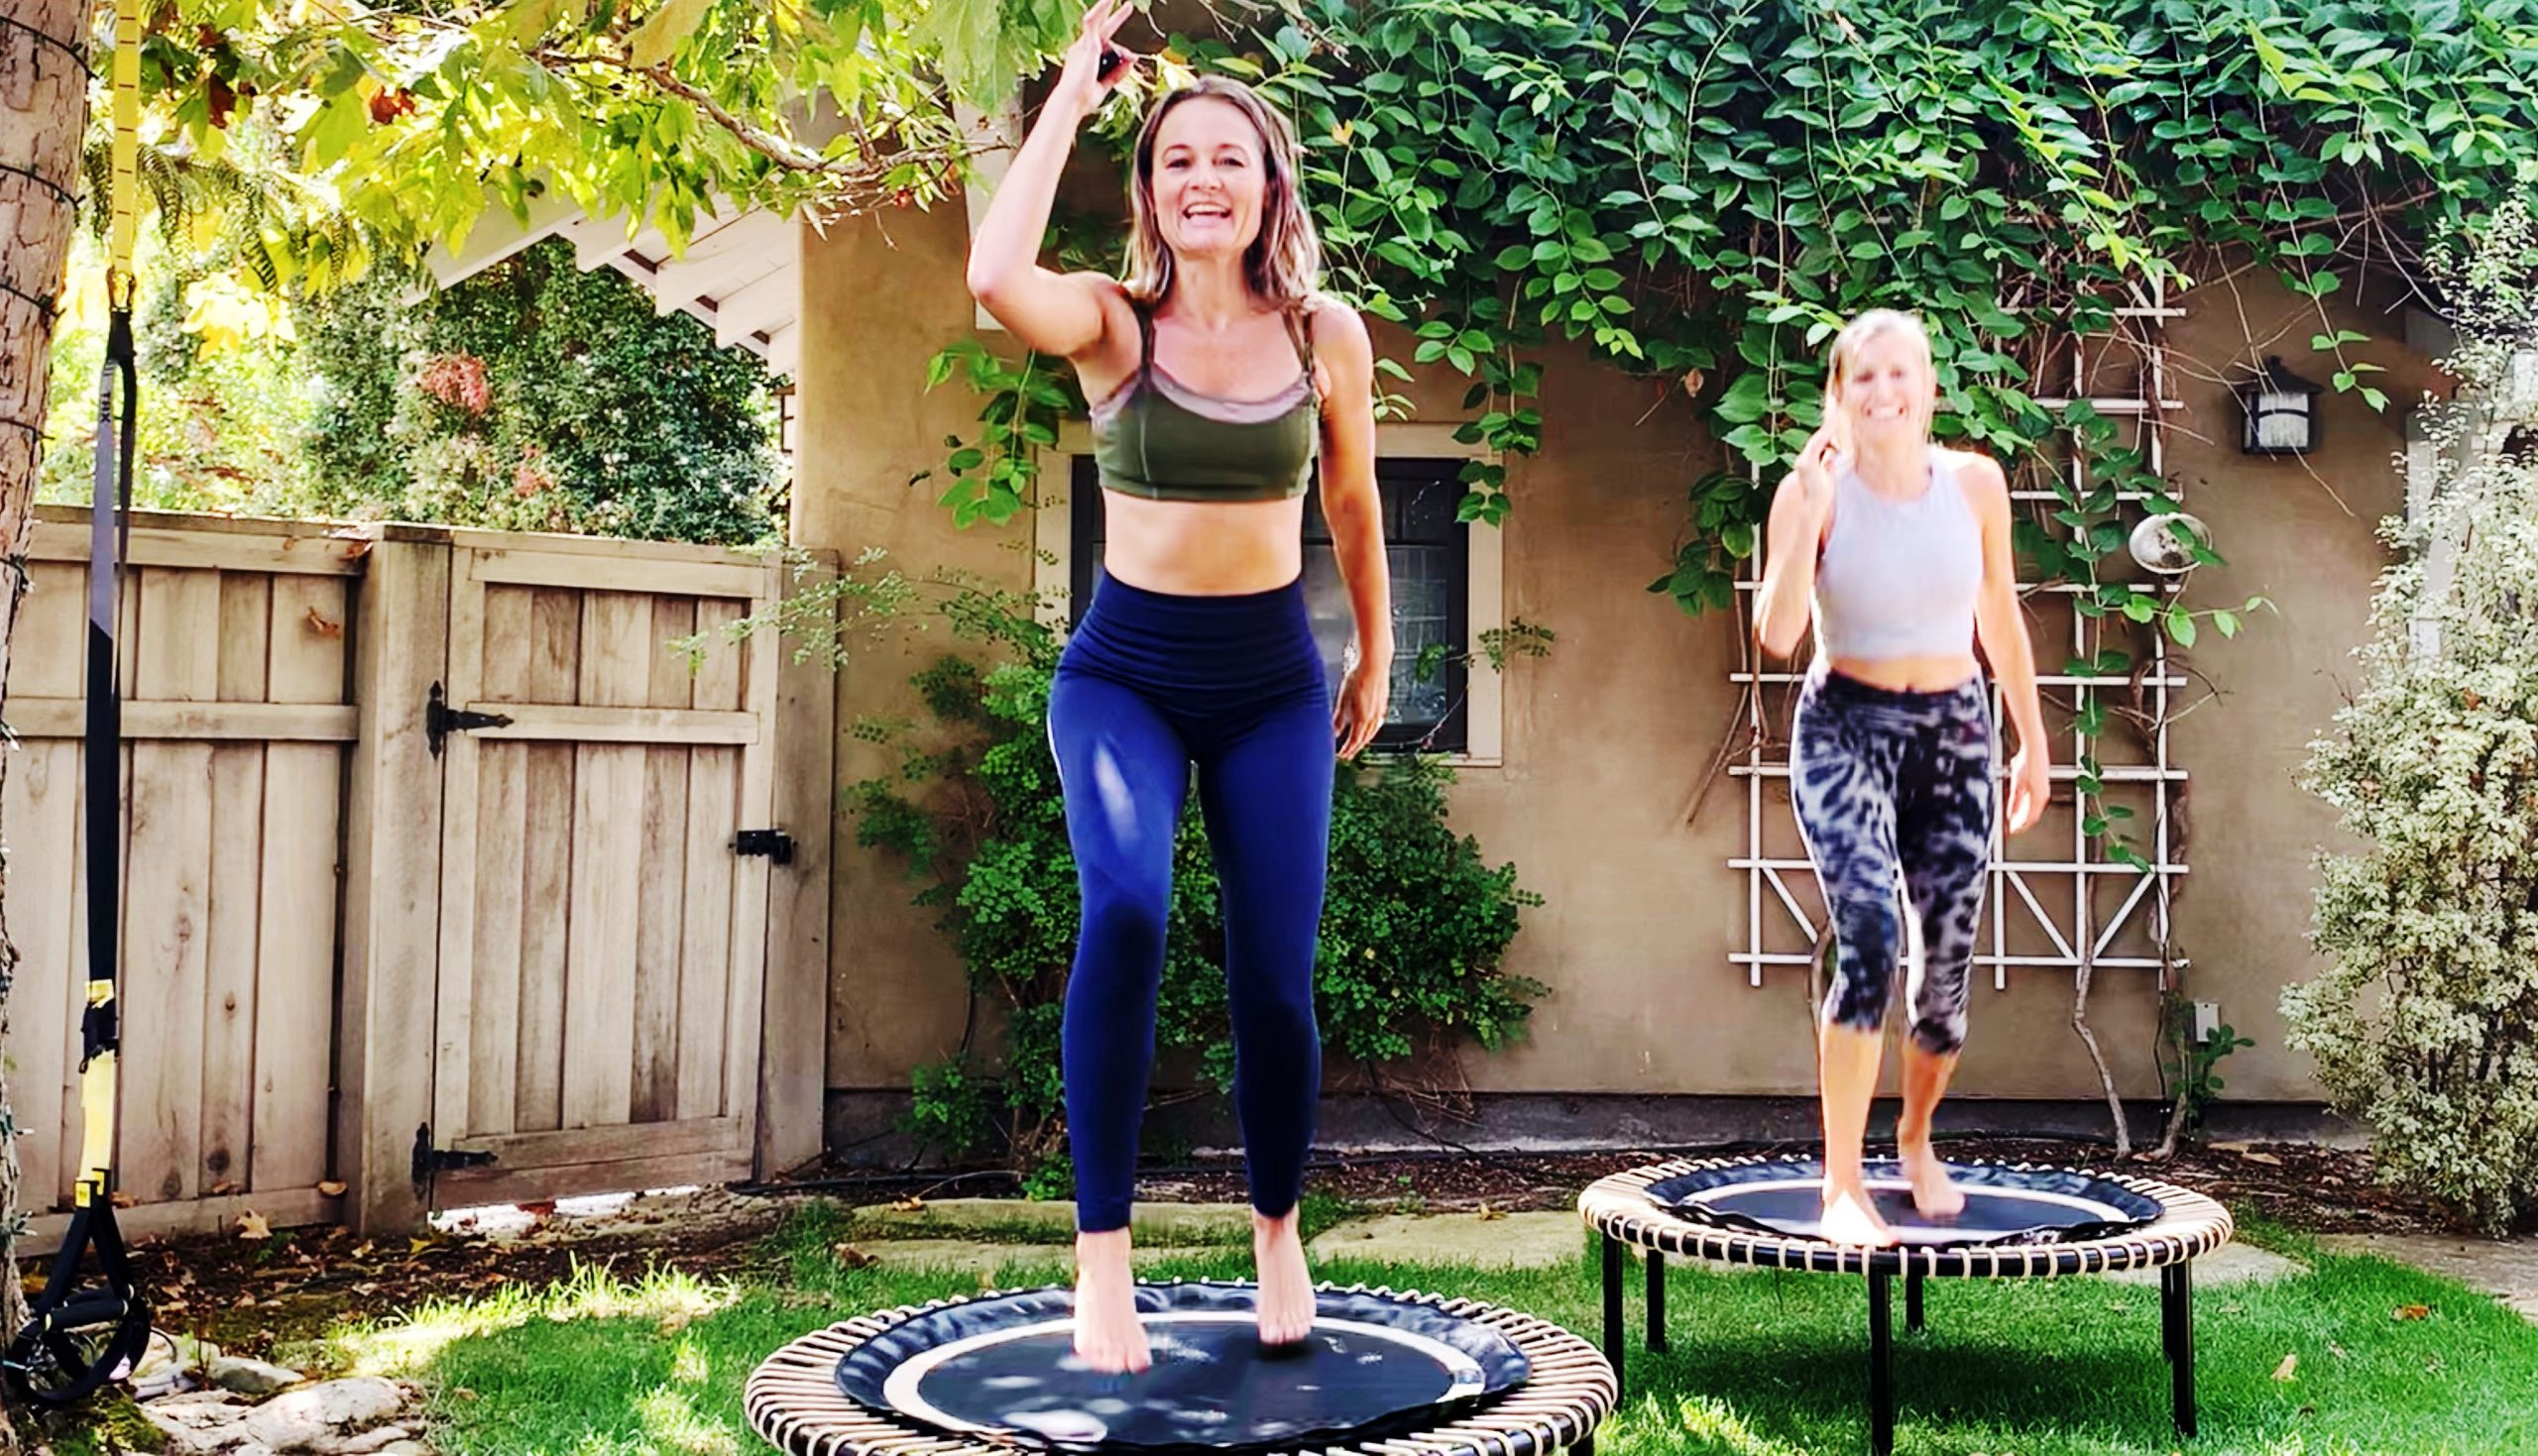 Rebounding on the Trampoline... Why I Bounce ! by Gone Adventuring